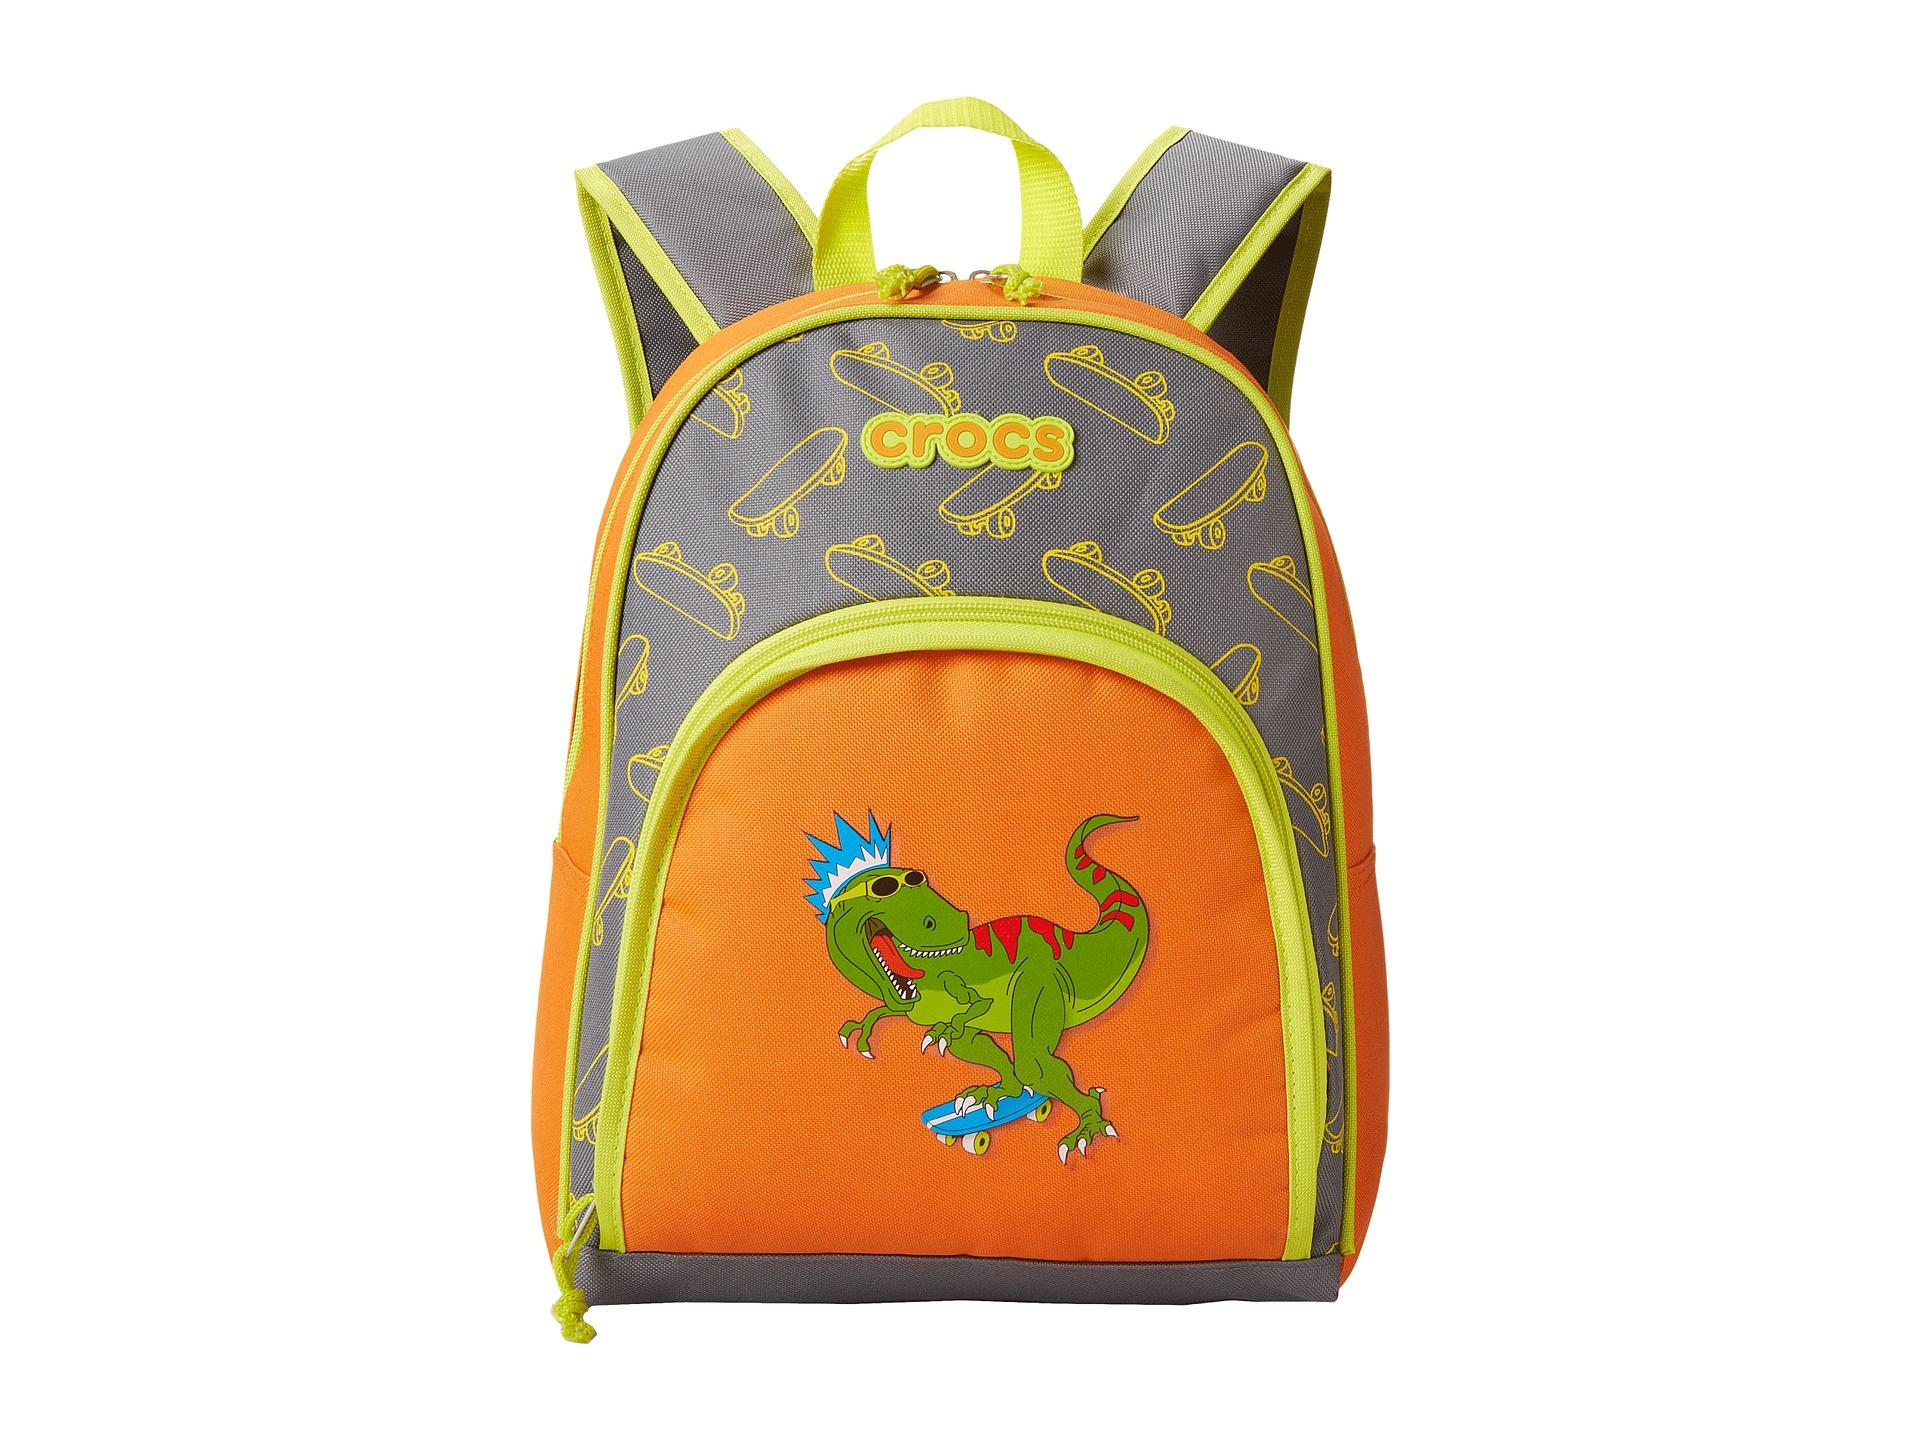 Crocs Crocs Pre School Backpack